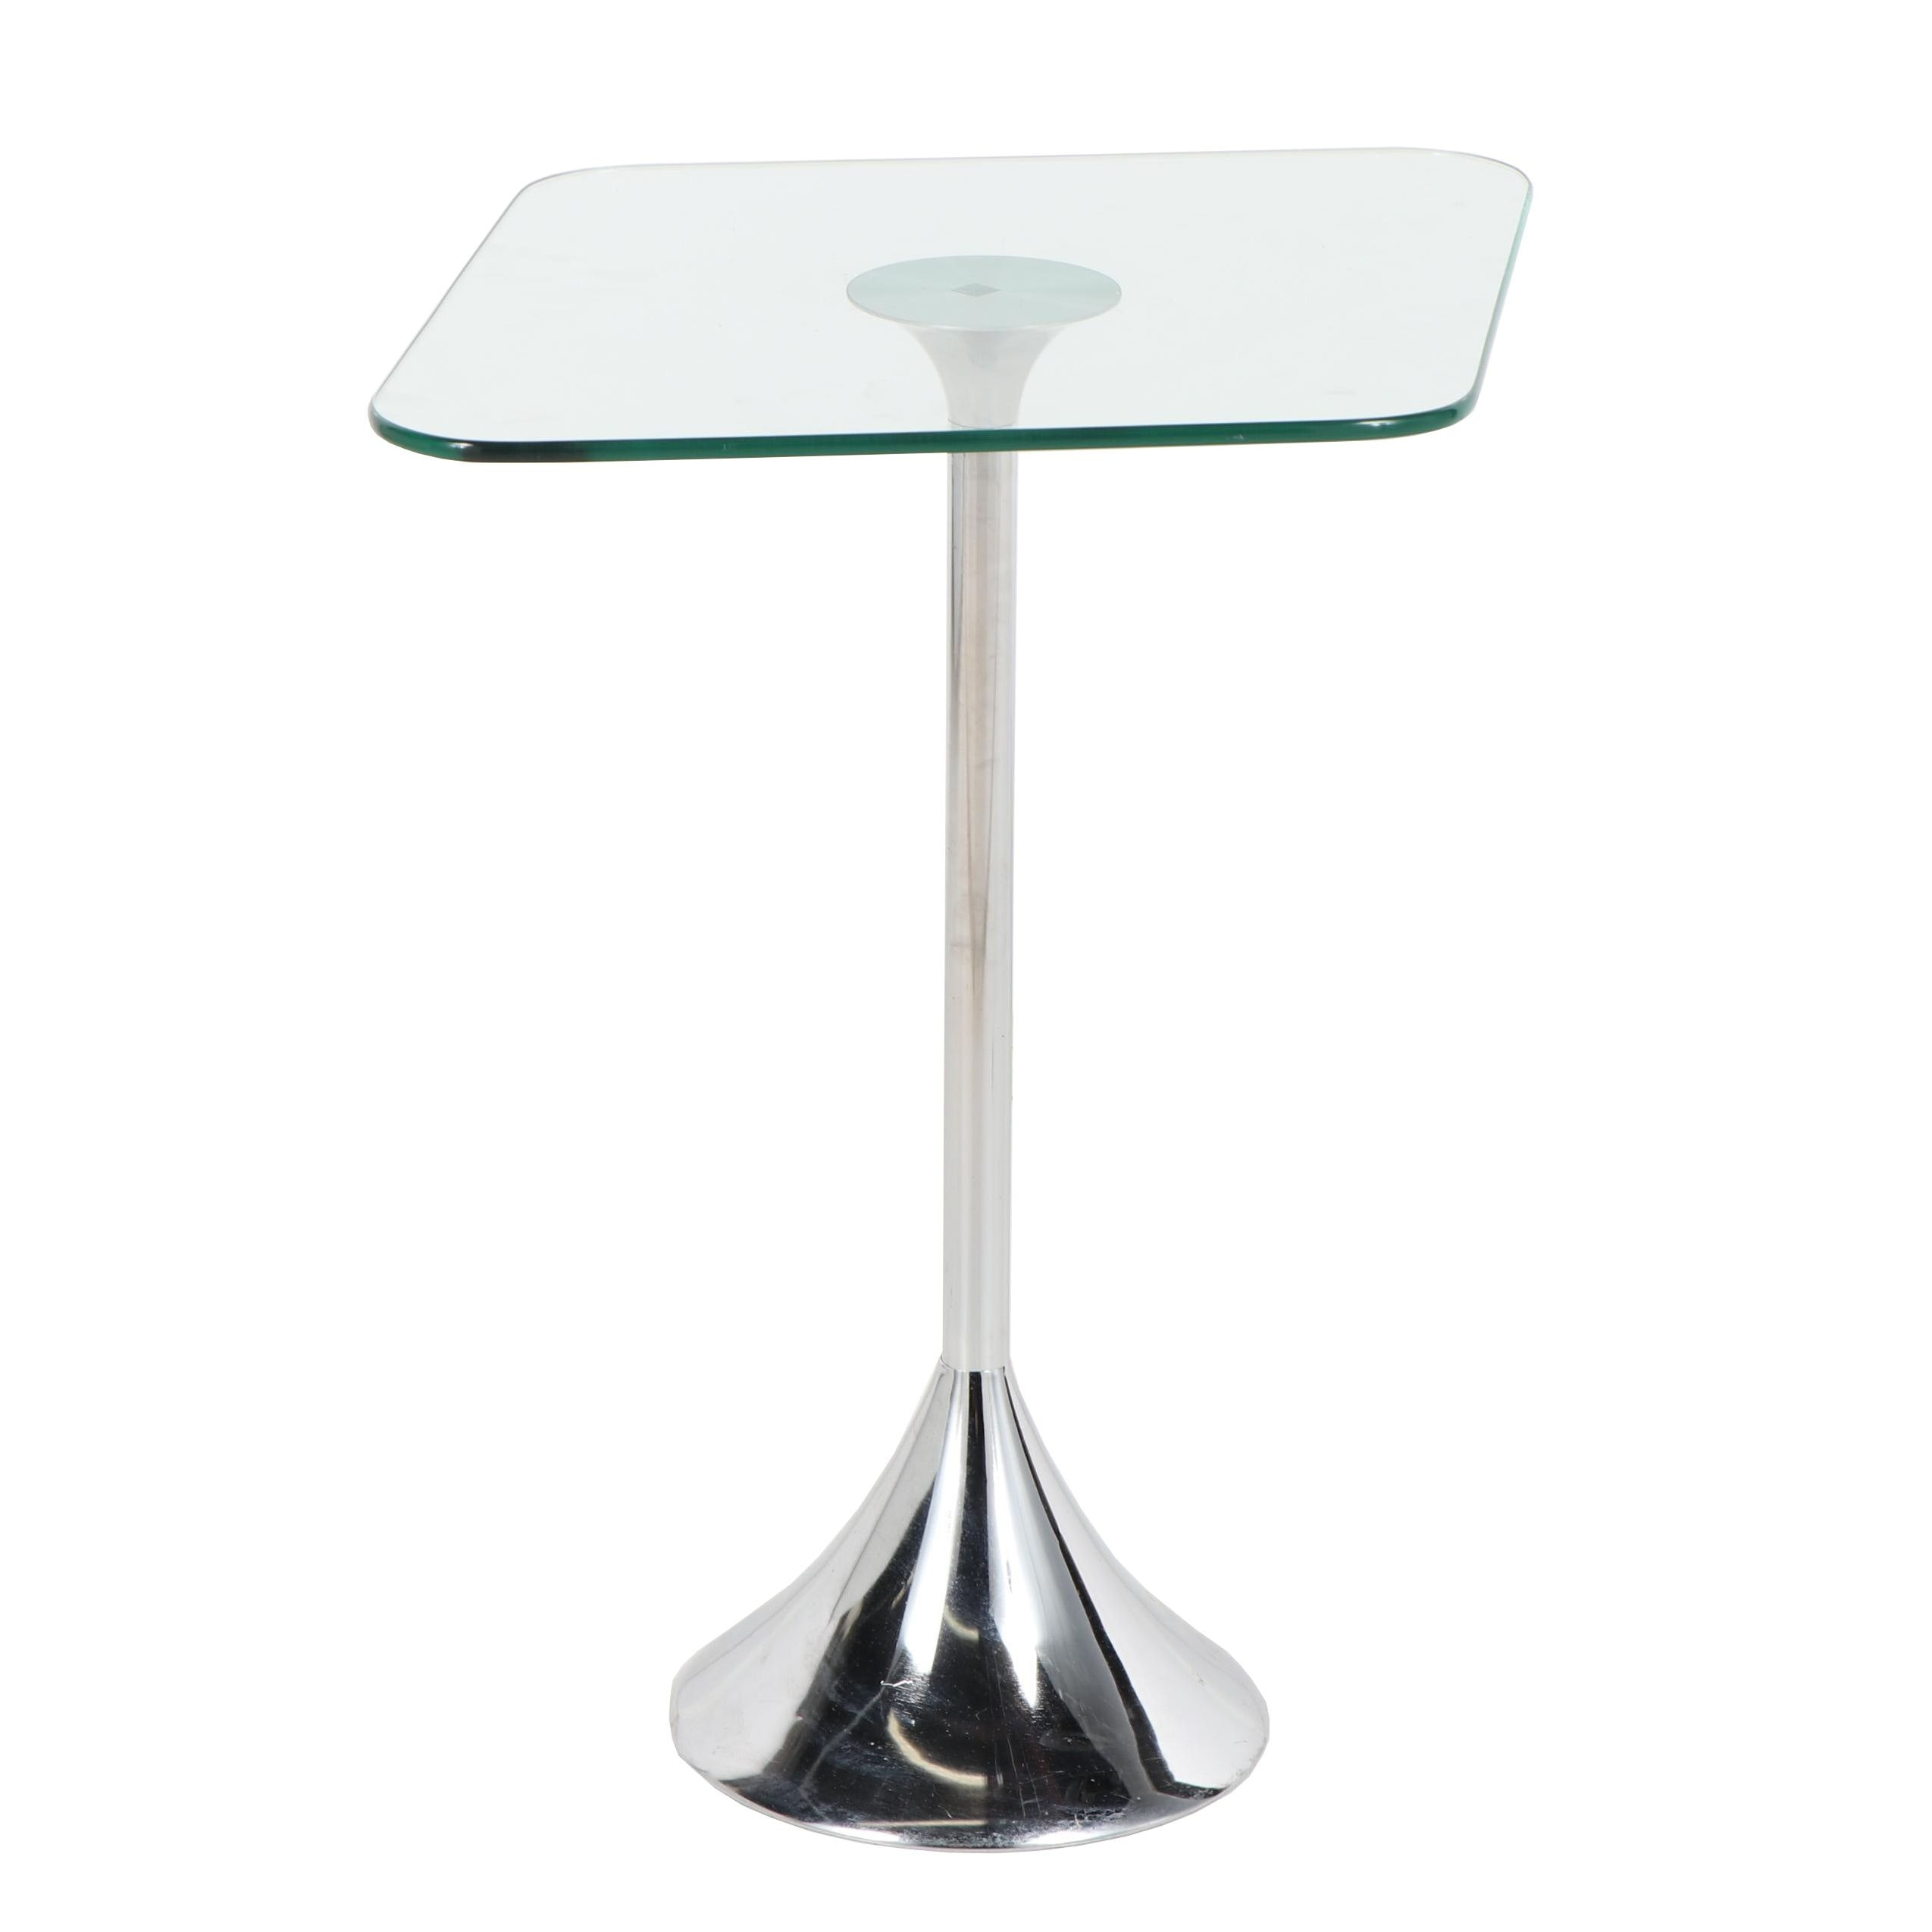 Contemporary Metal and Glass Side Table by David Quan for Umbra